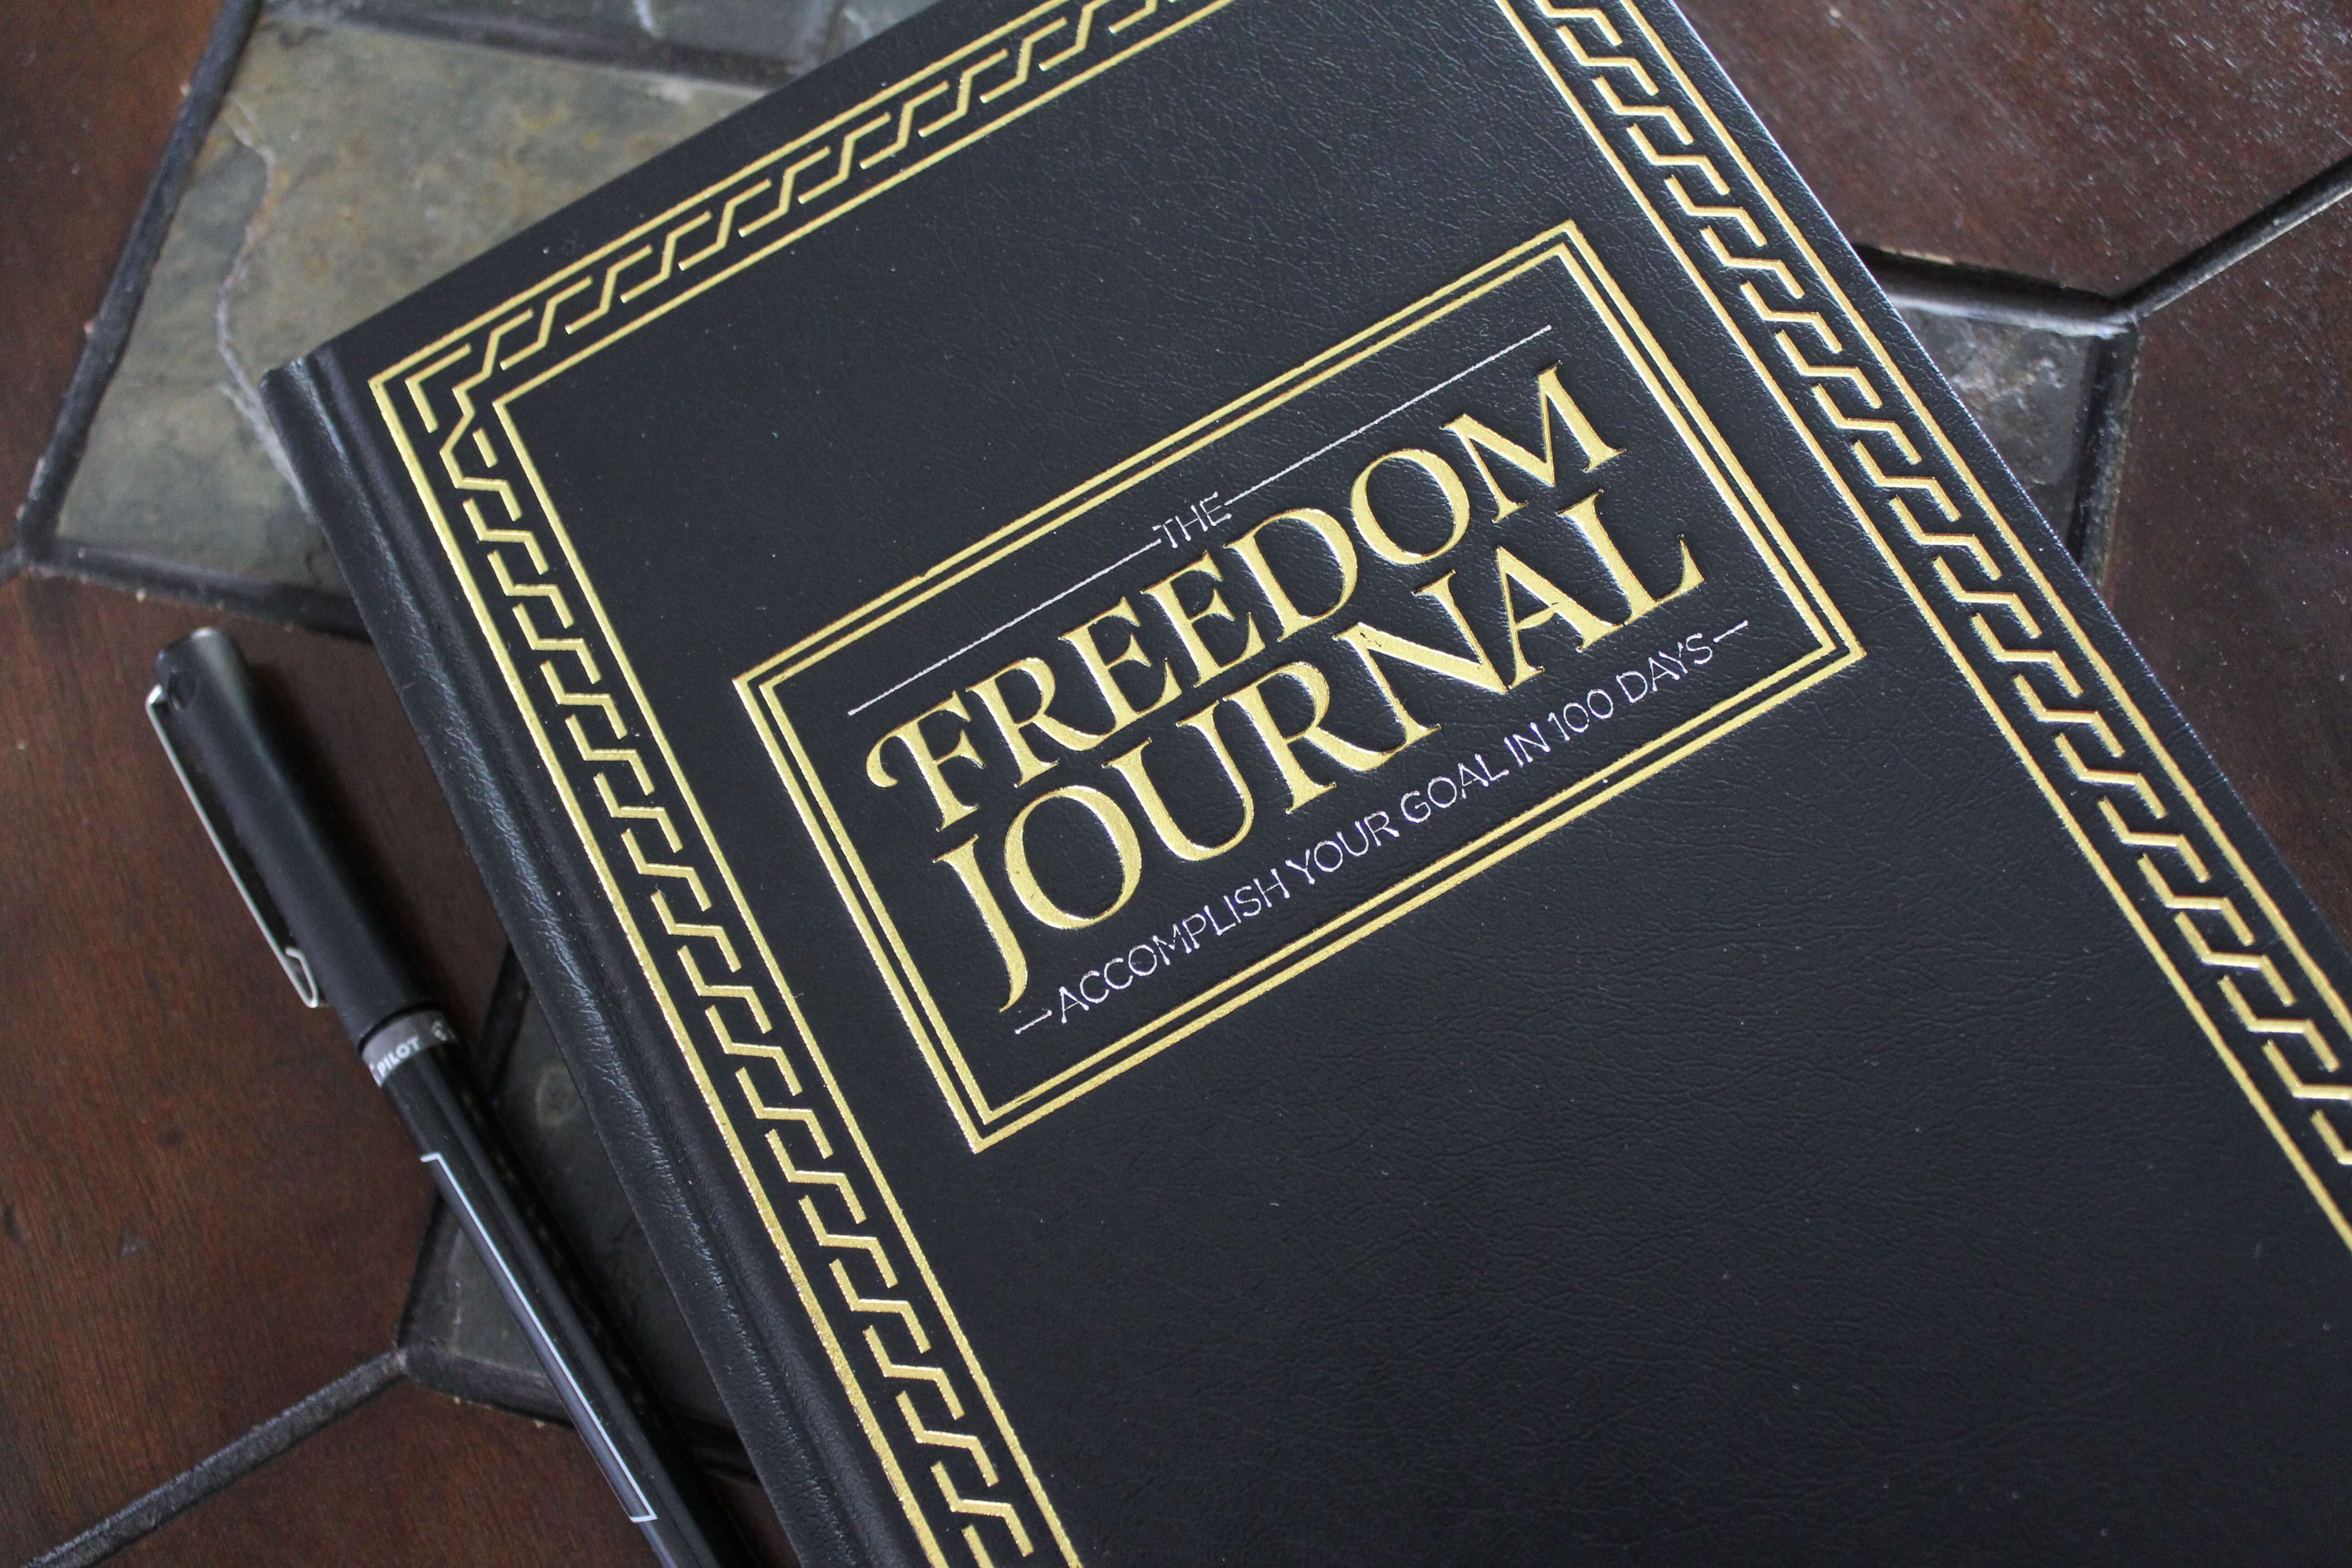 Review: The Freedom Journal, A Journal for Goal-Oriented People